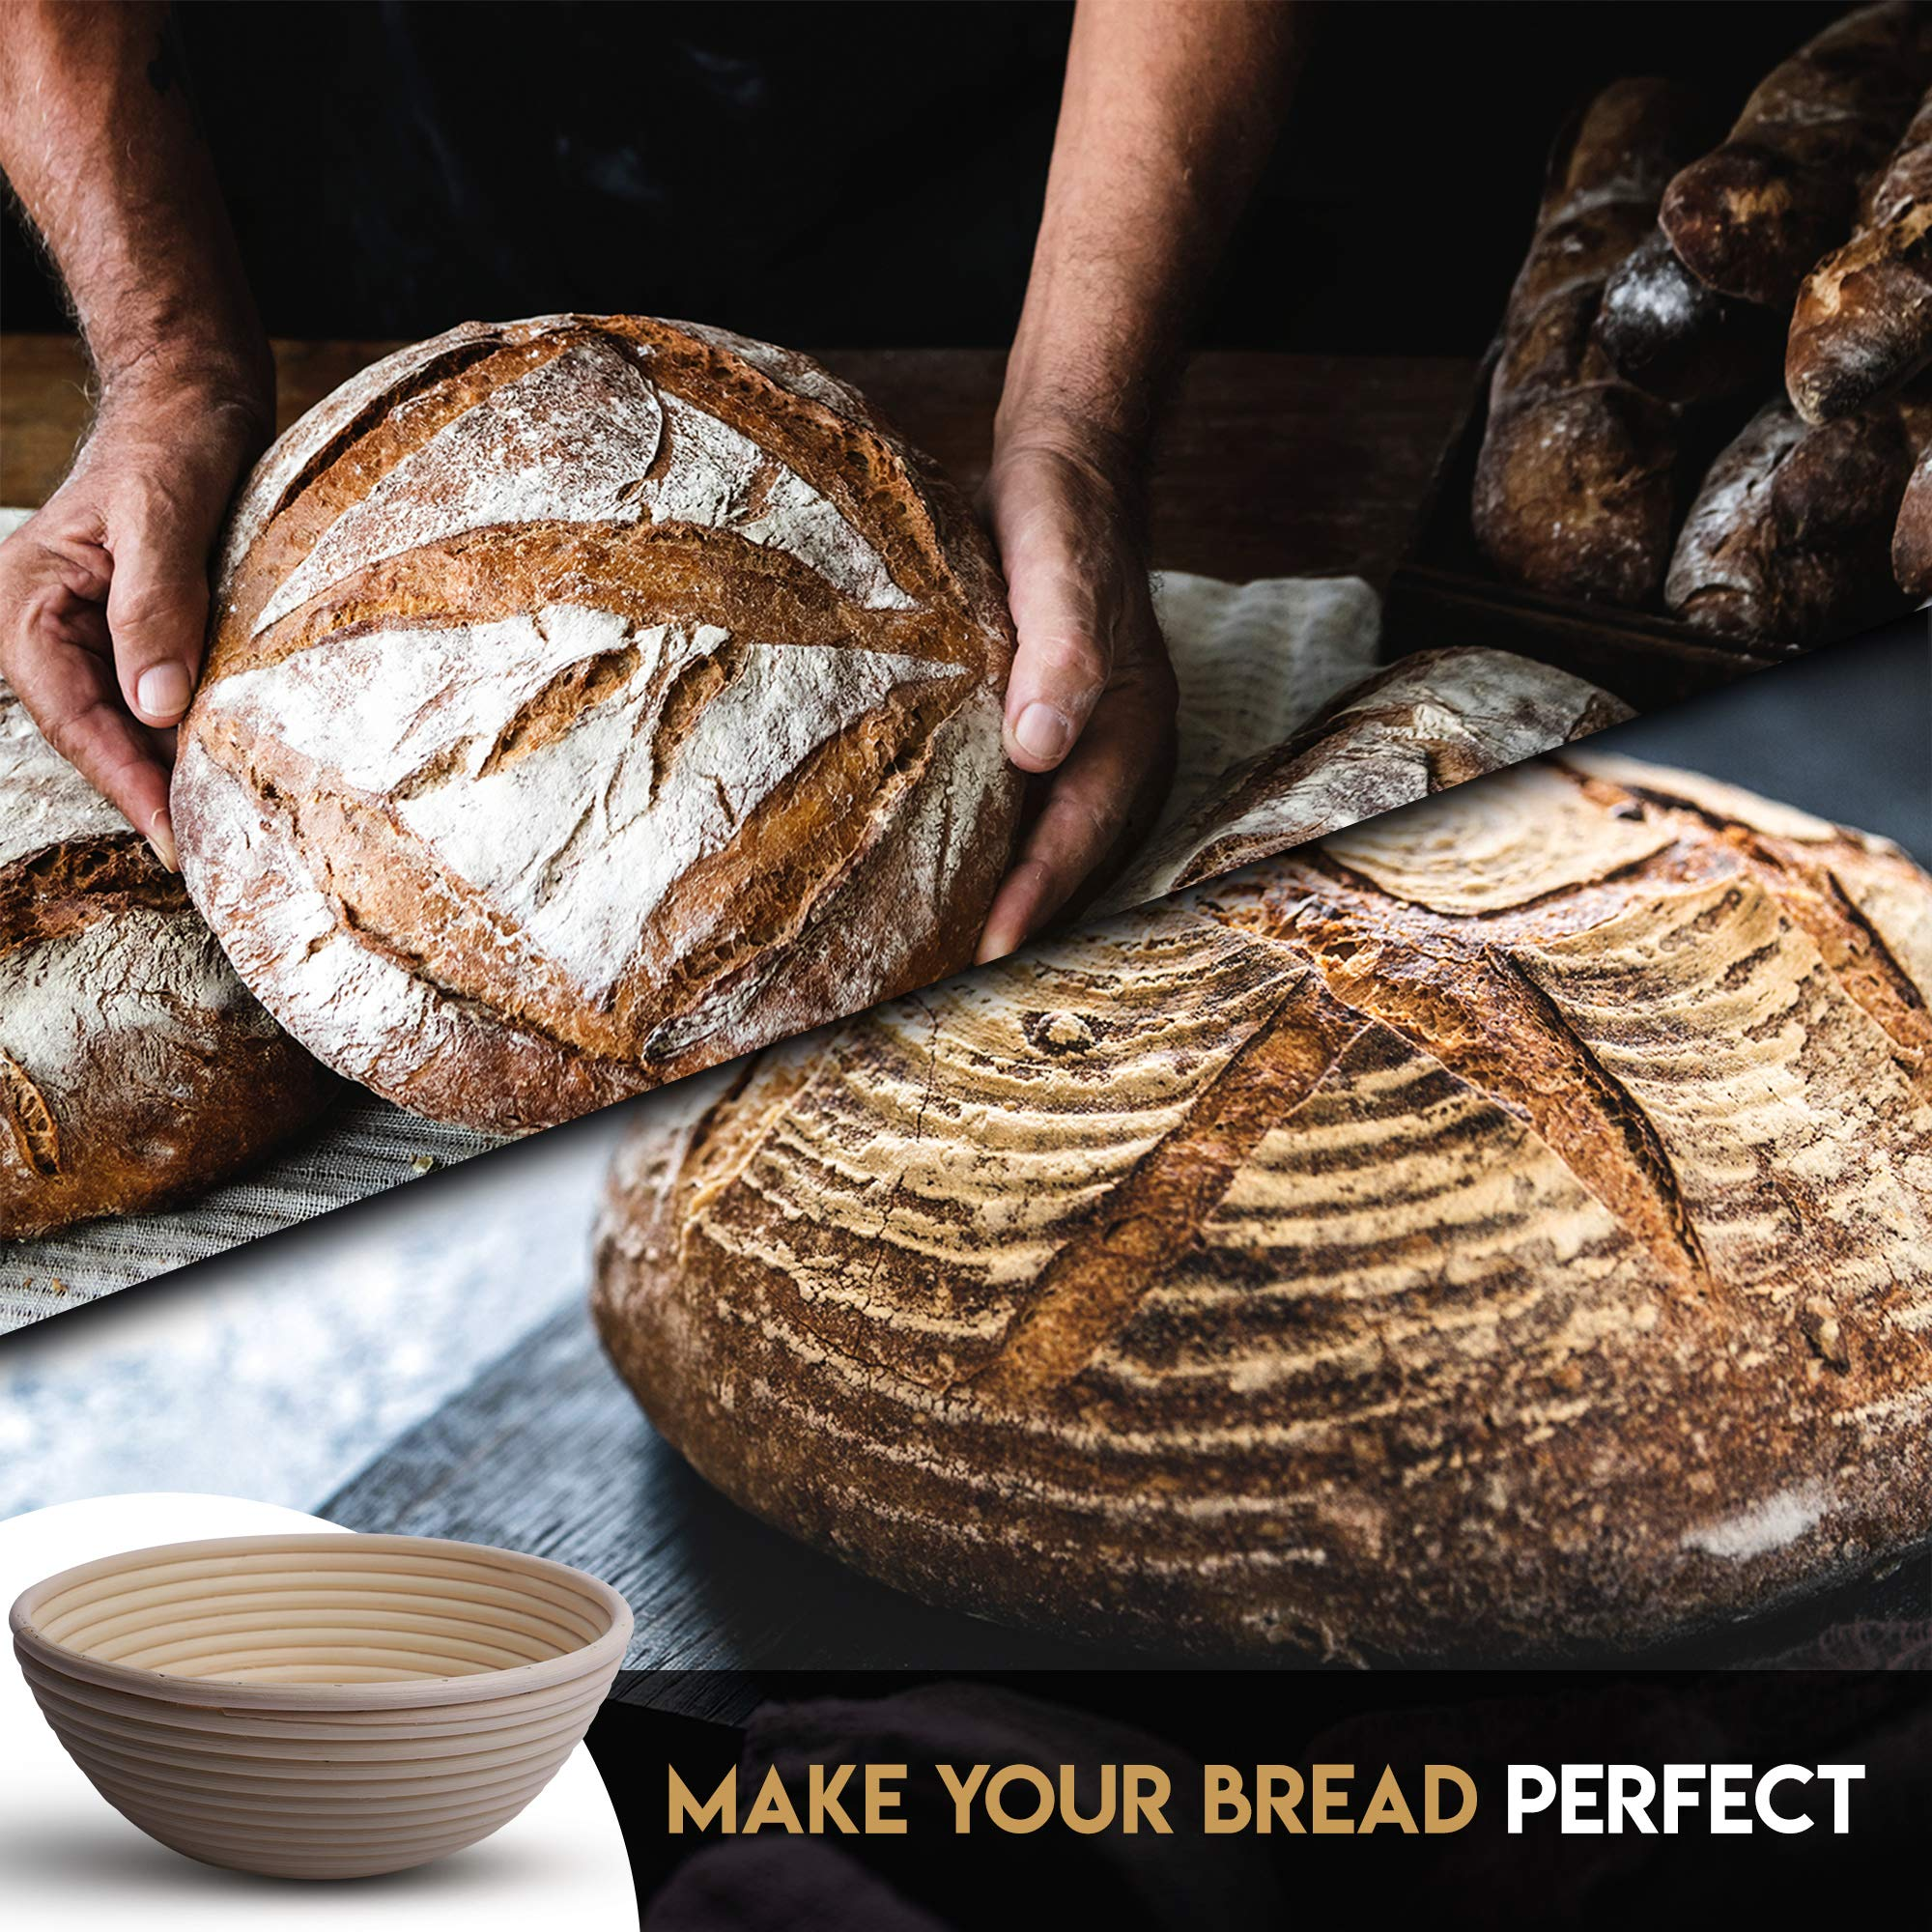 Banneton Bread Proofing Basket By Caesar Bread, 9 Inch Round Sourdough Brotform For Rising Dough Set, Include Cloth Liner, Scraper, Bread Lame, Brush & Recipe Book For Beginners & Professional Bakers by Caesar Bread (Image #5)